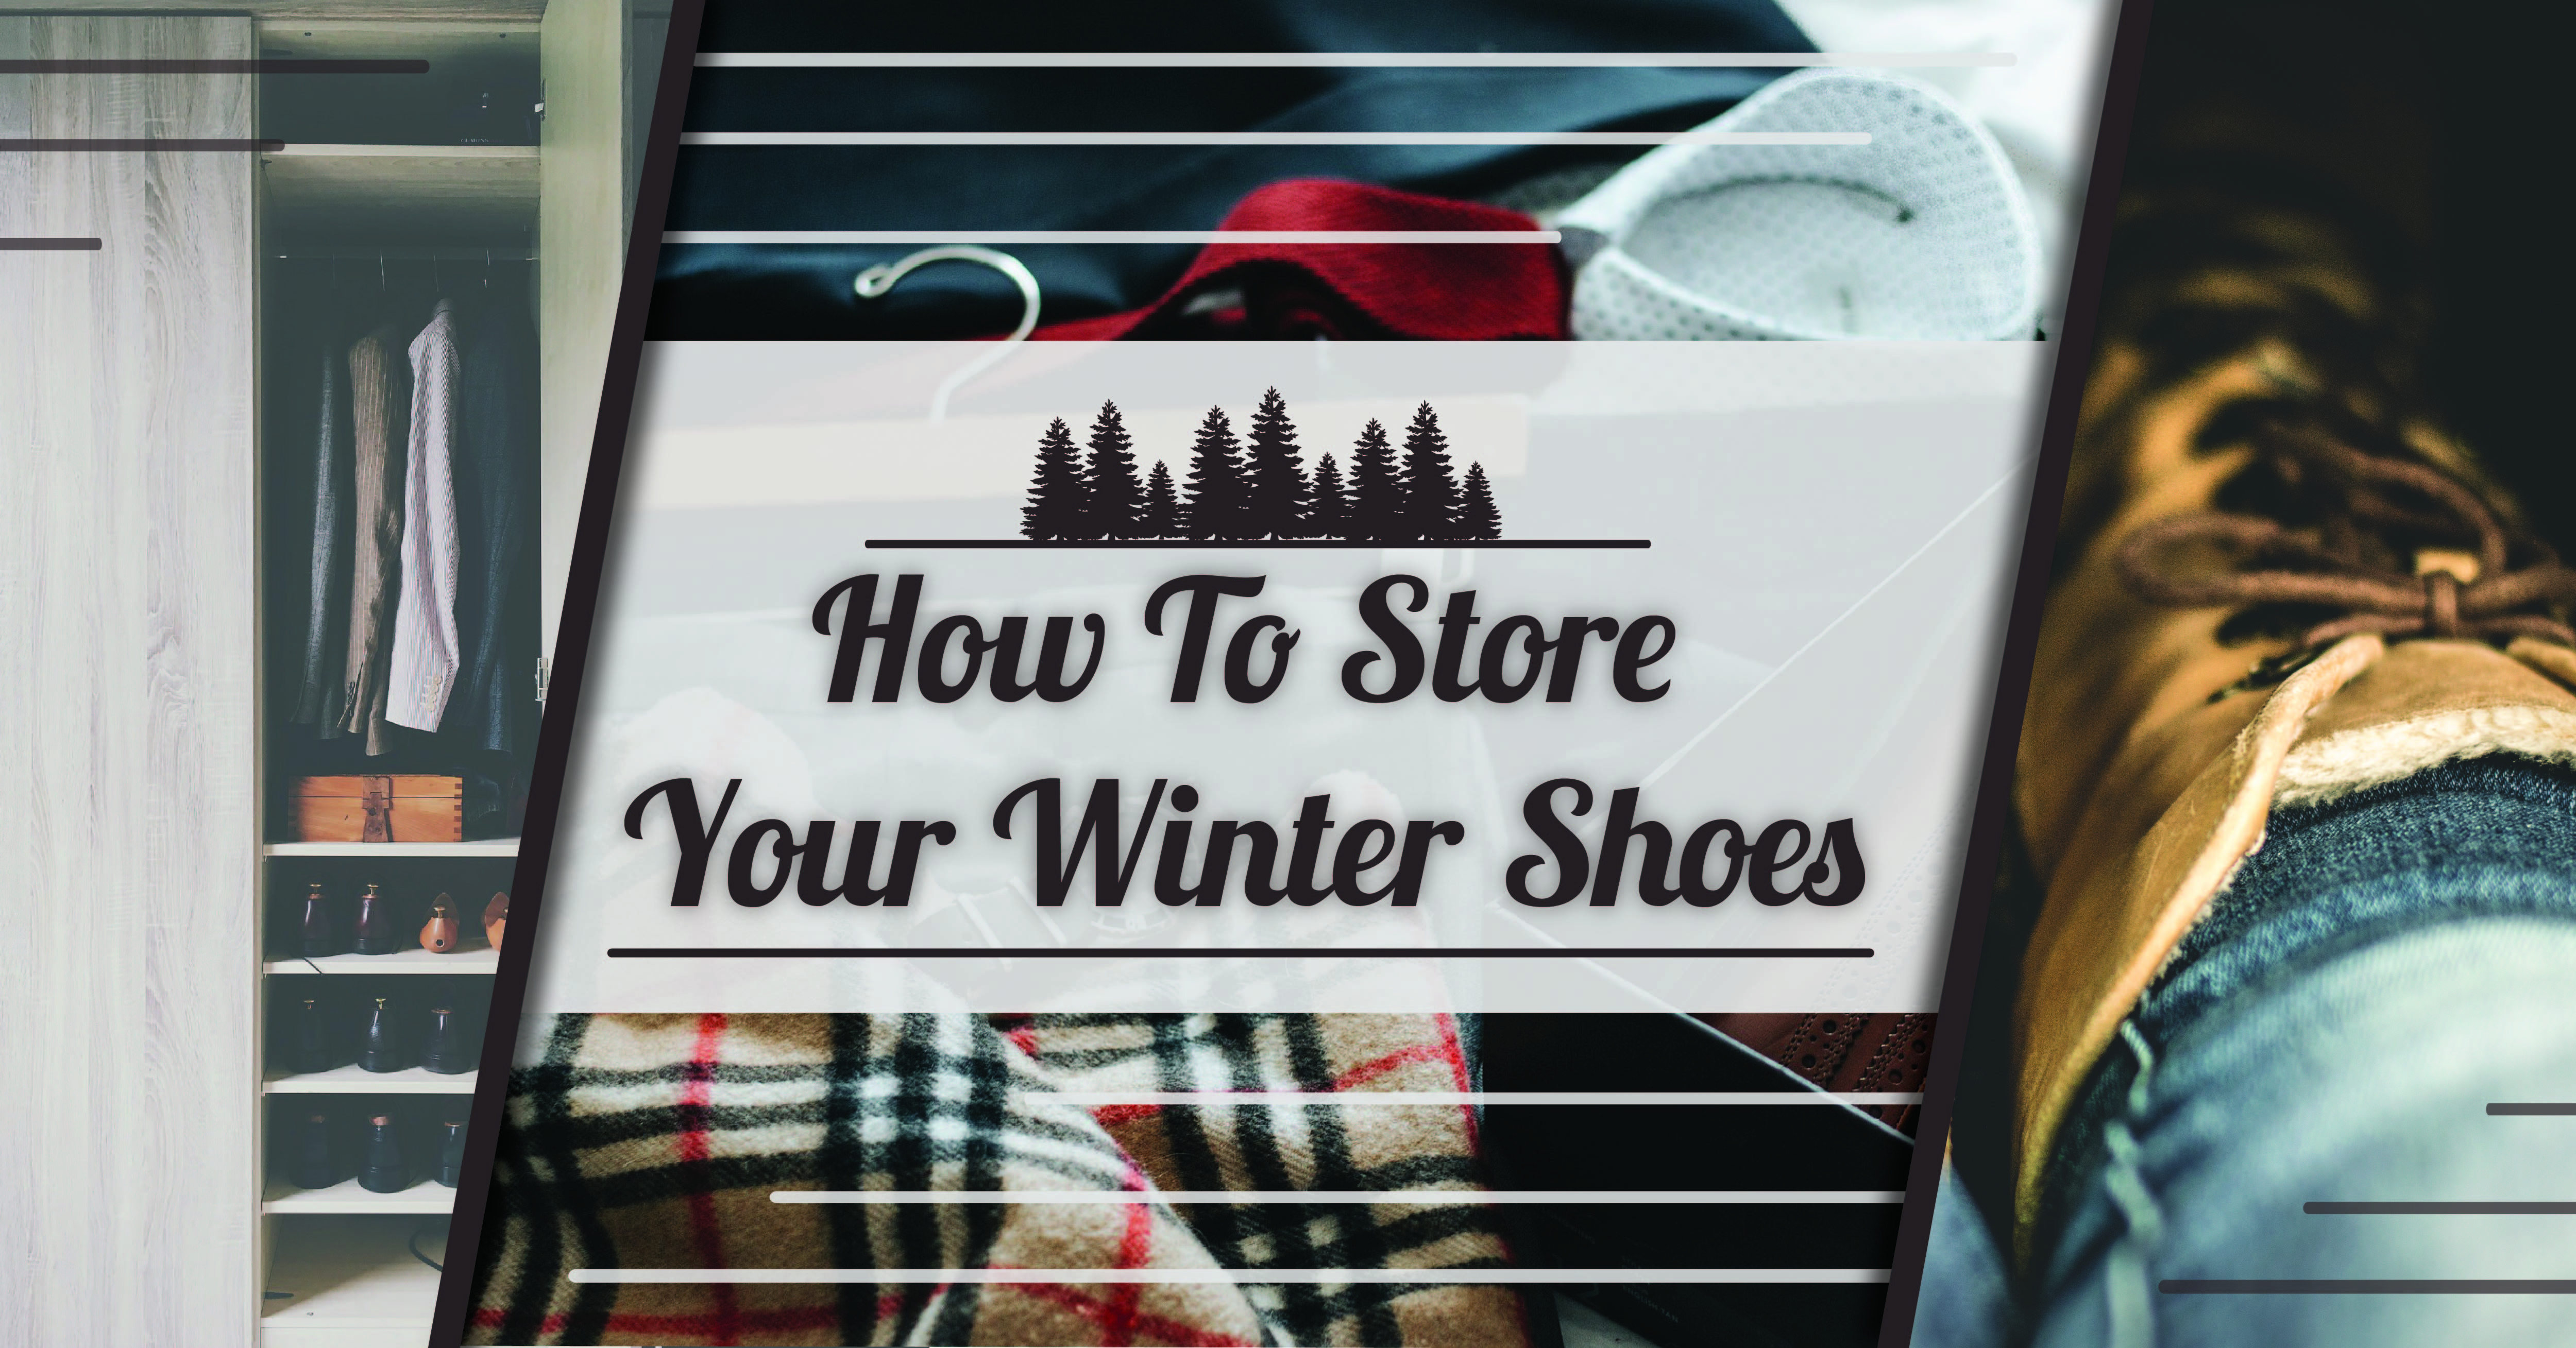 How to Store Your Winter Shoes